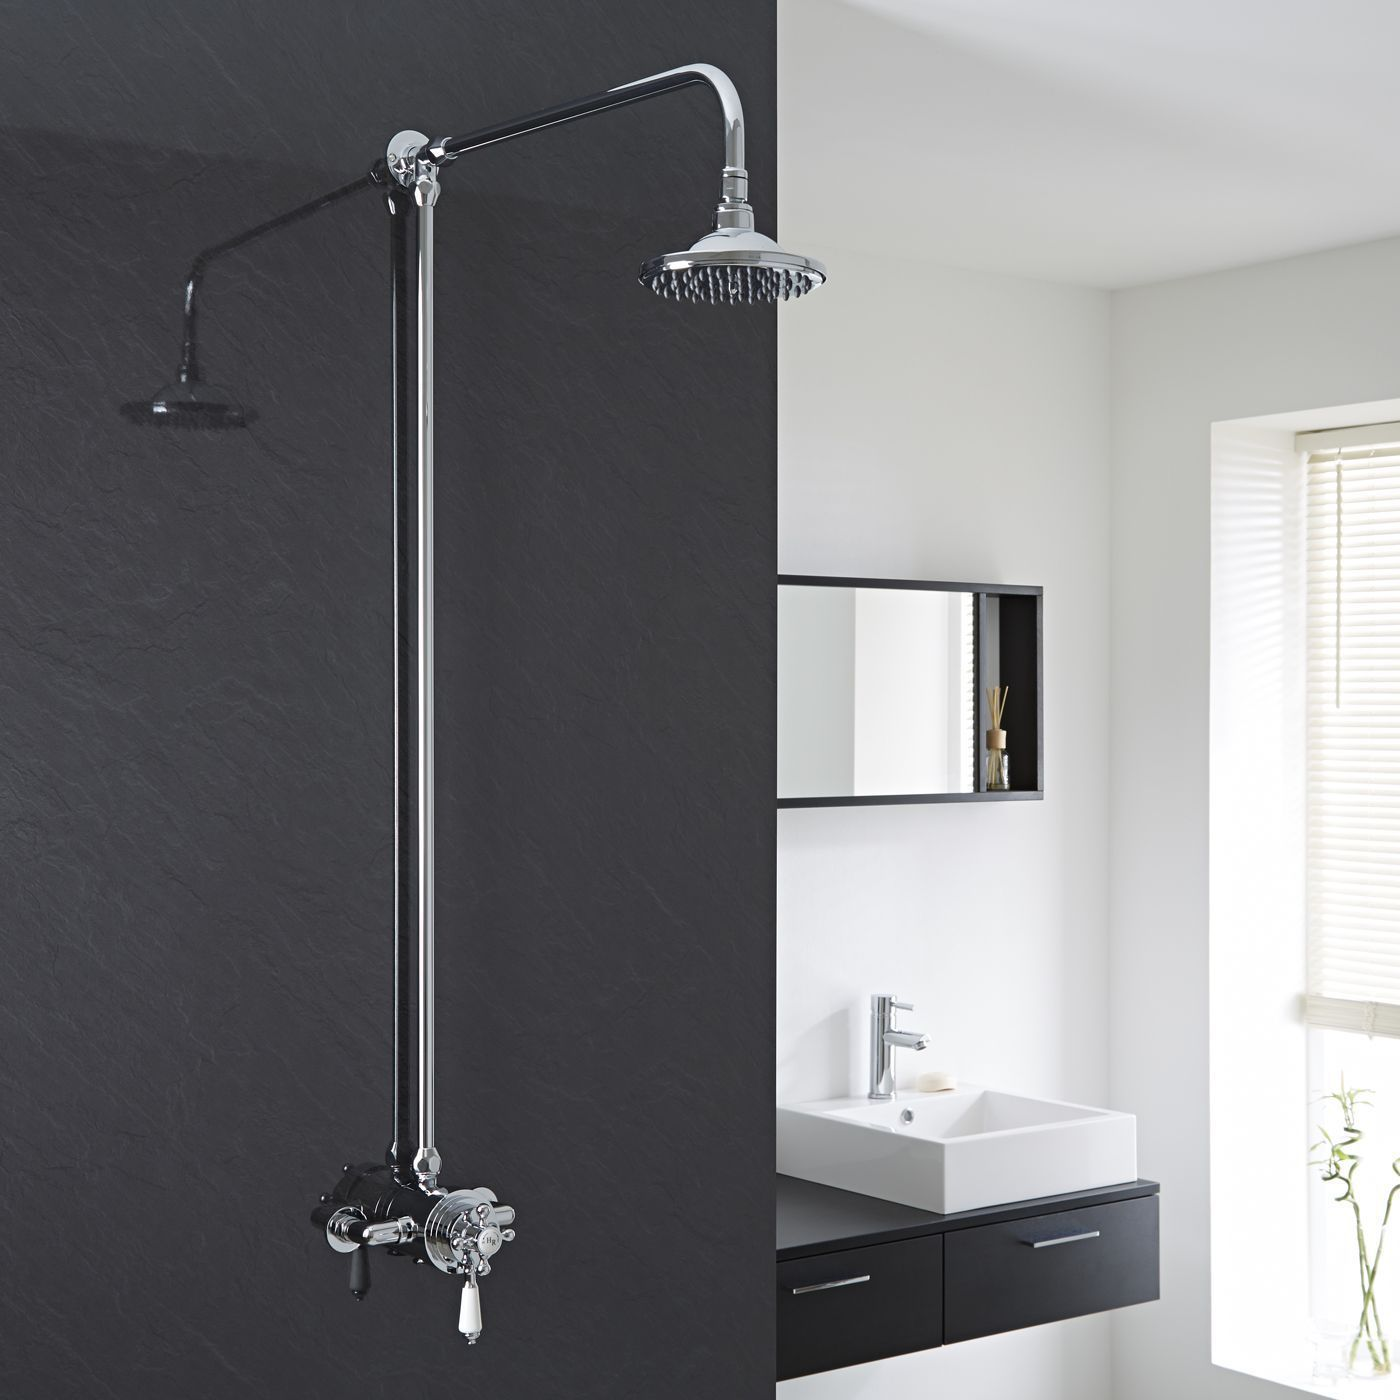 Dual Exposed Thermostatic Control Shower Faucet With Rigid Riser Kit